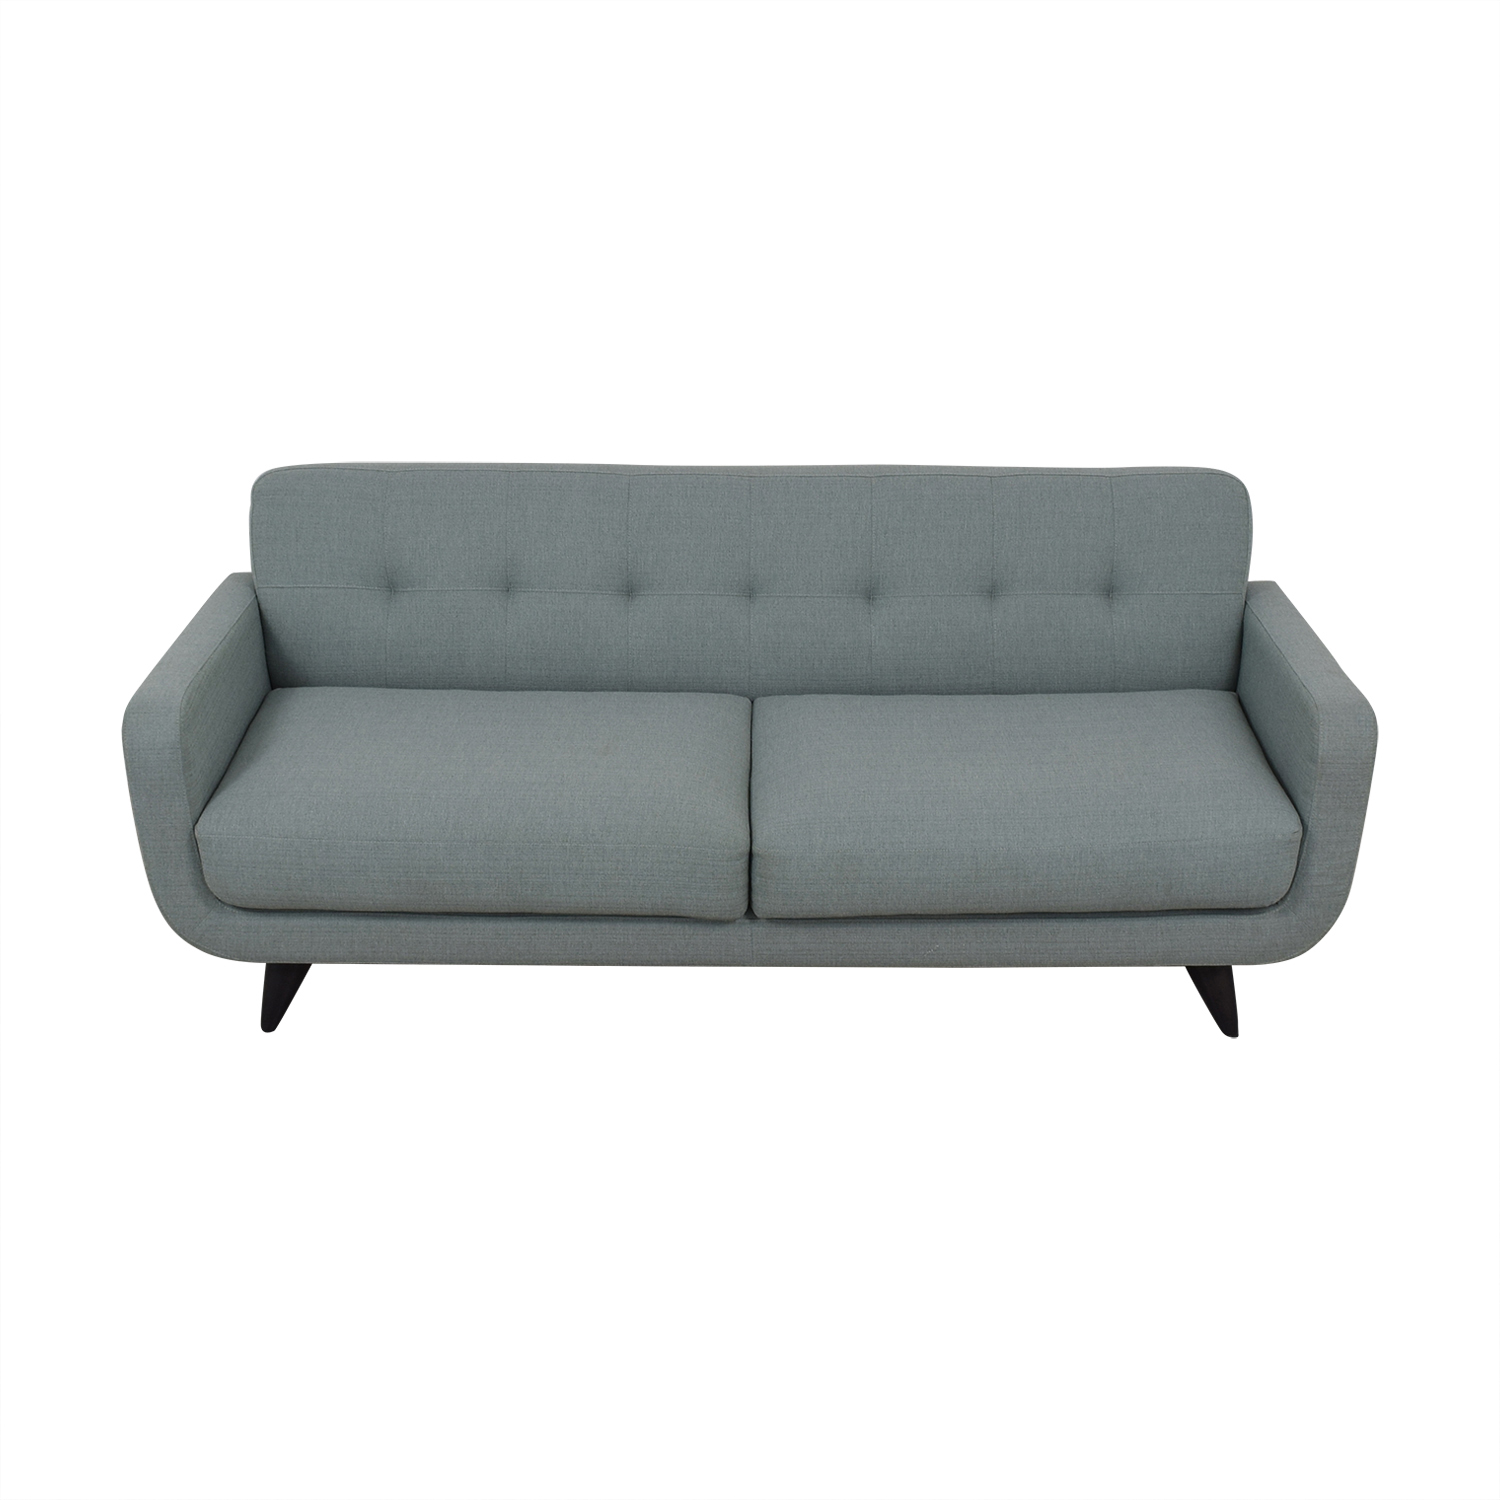 Room & Board Room & Board Anson Blue Grey Tufted Two-Cushion Couch Sofas